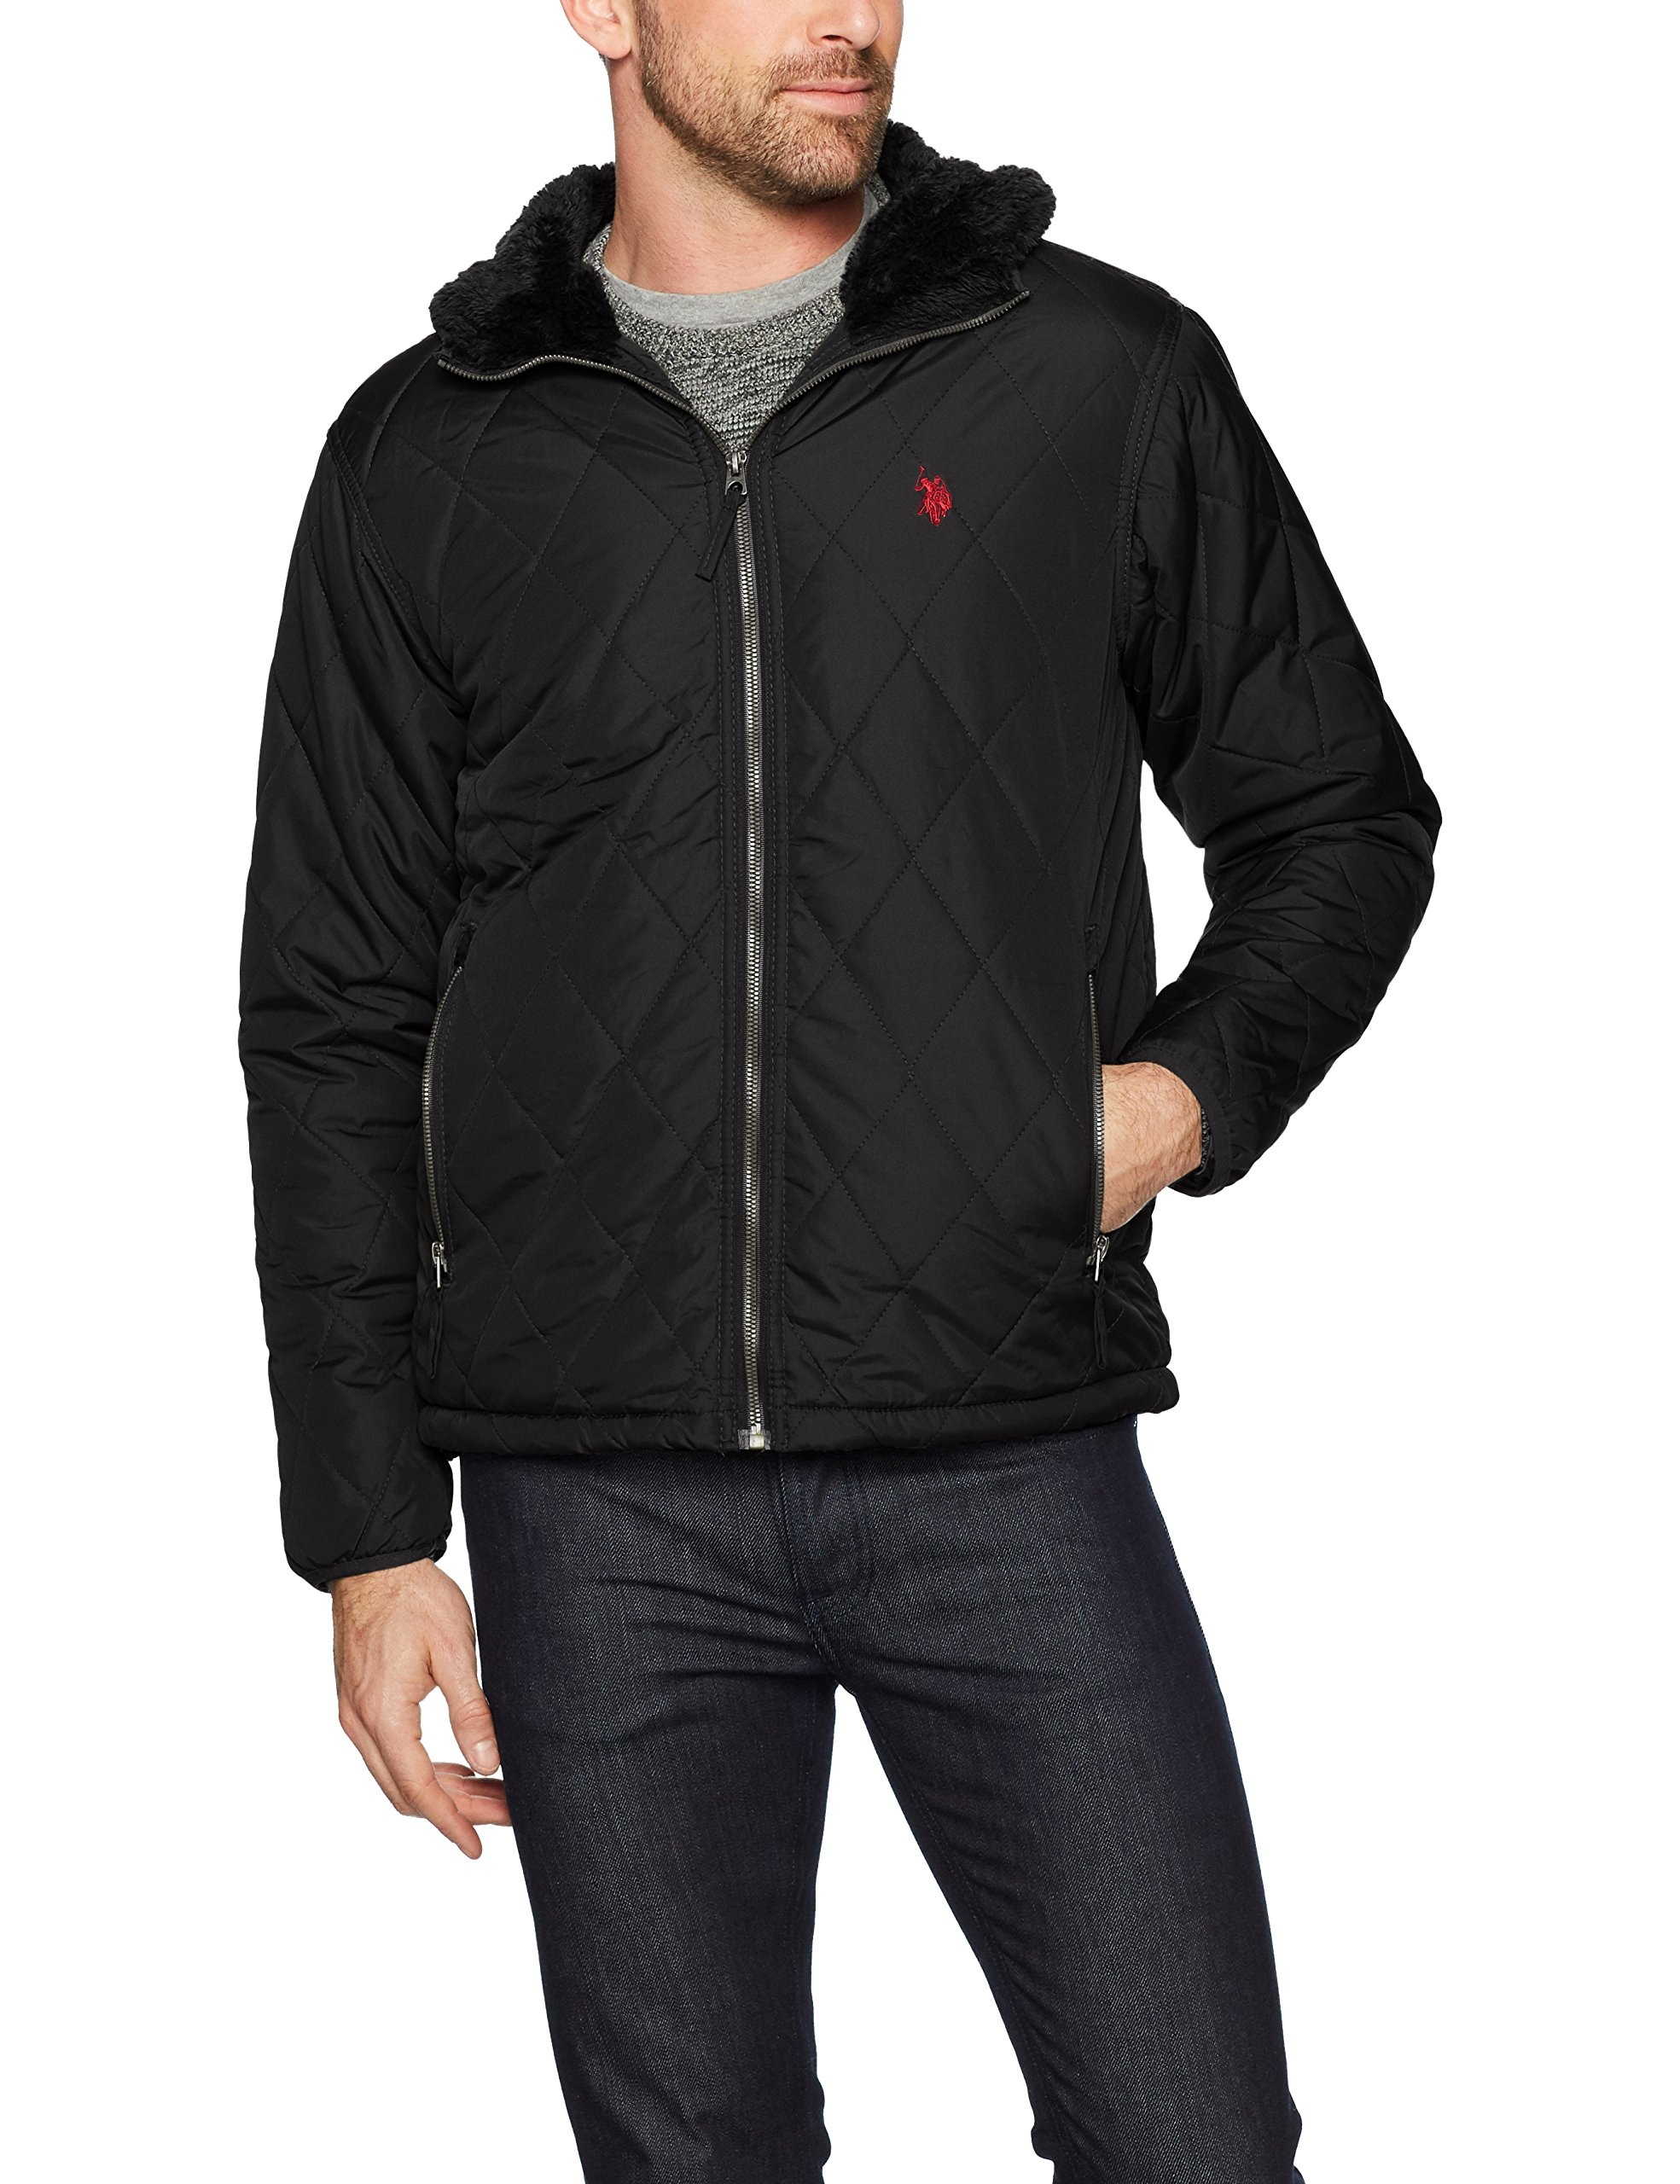 U.S. Polo Assn.. Mens Standard Quilted Jacket, Black 5970, M by U.S. Polo Assn.